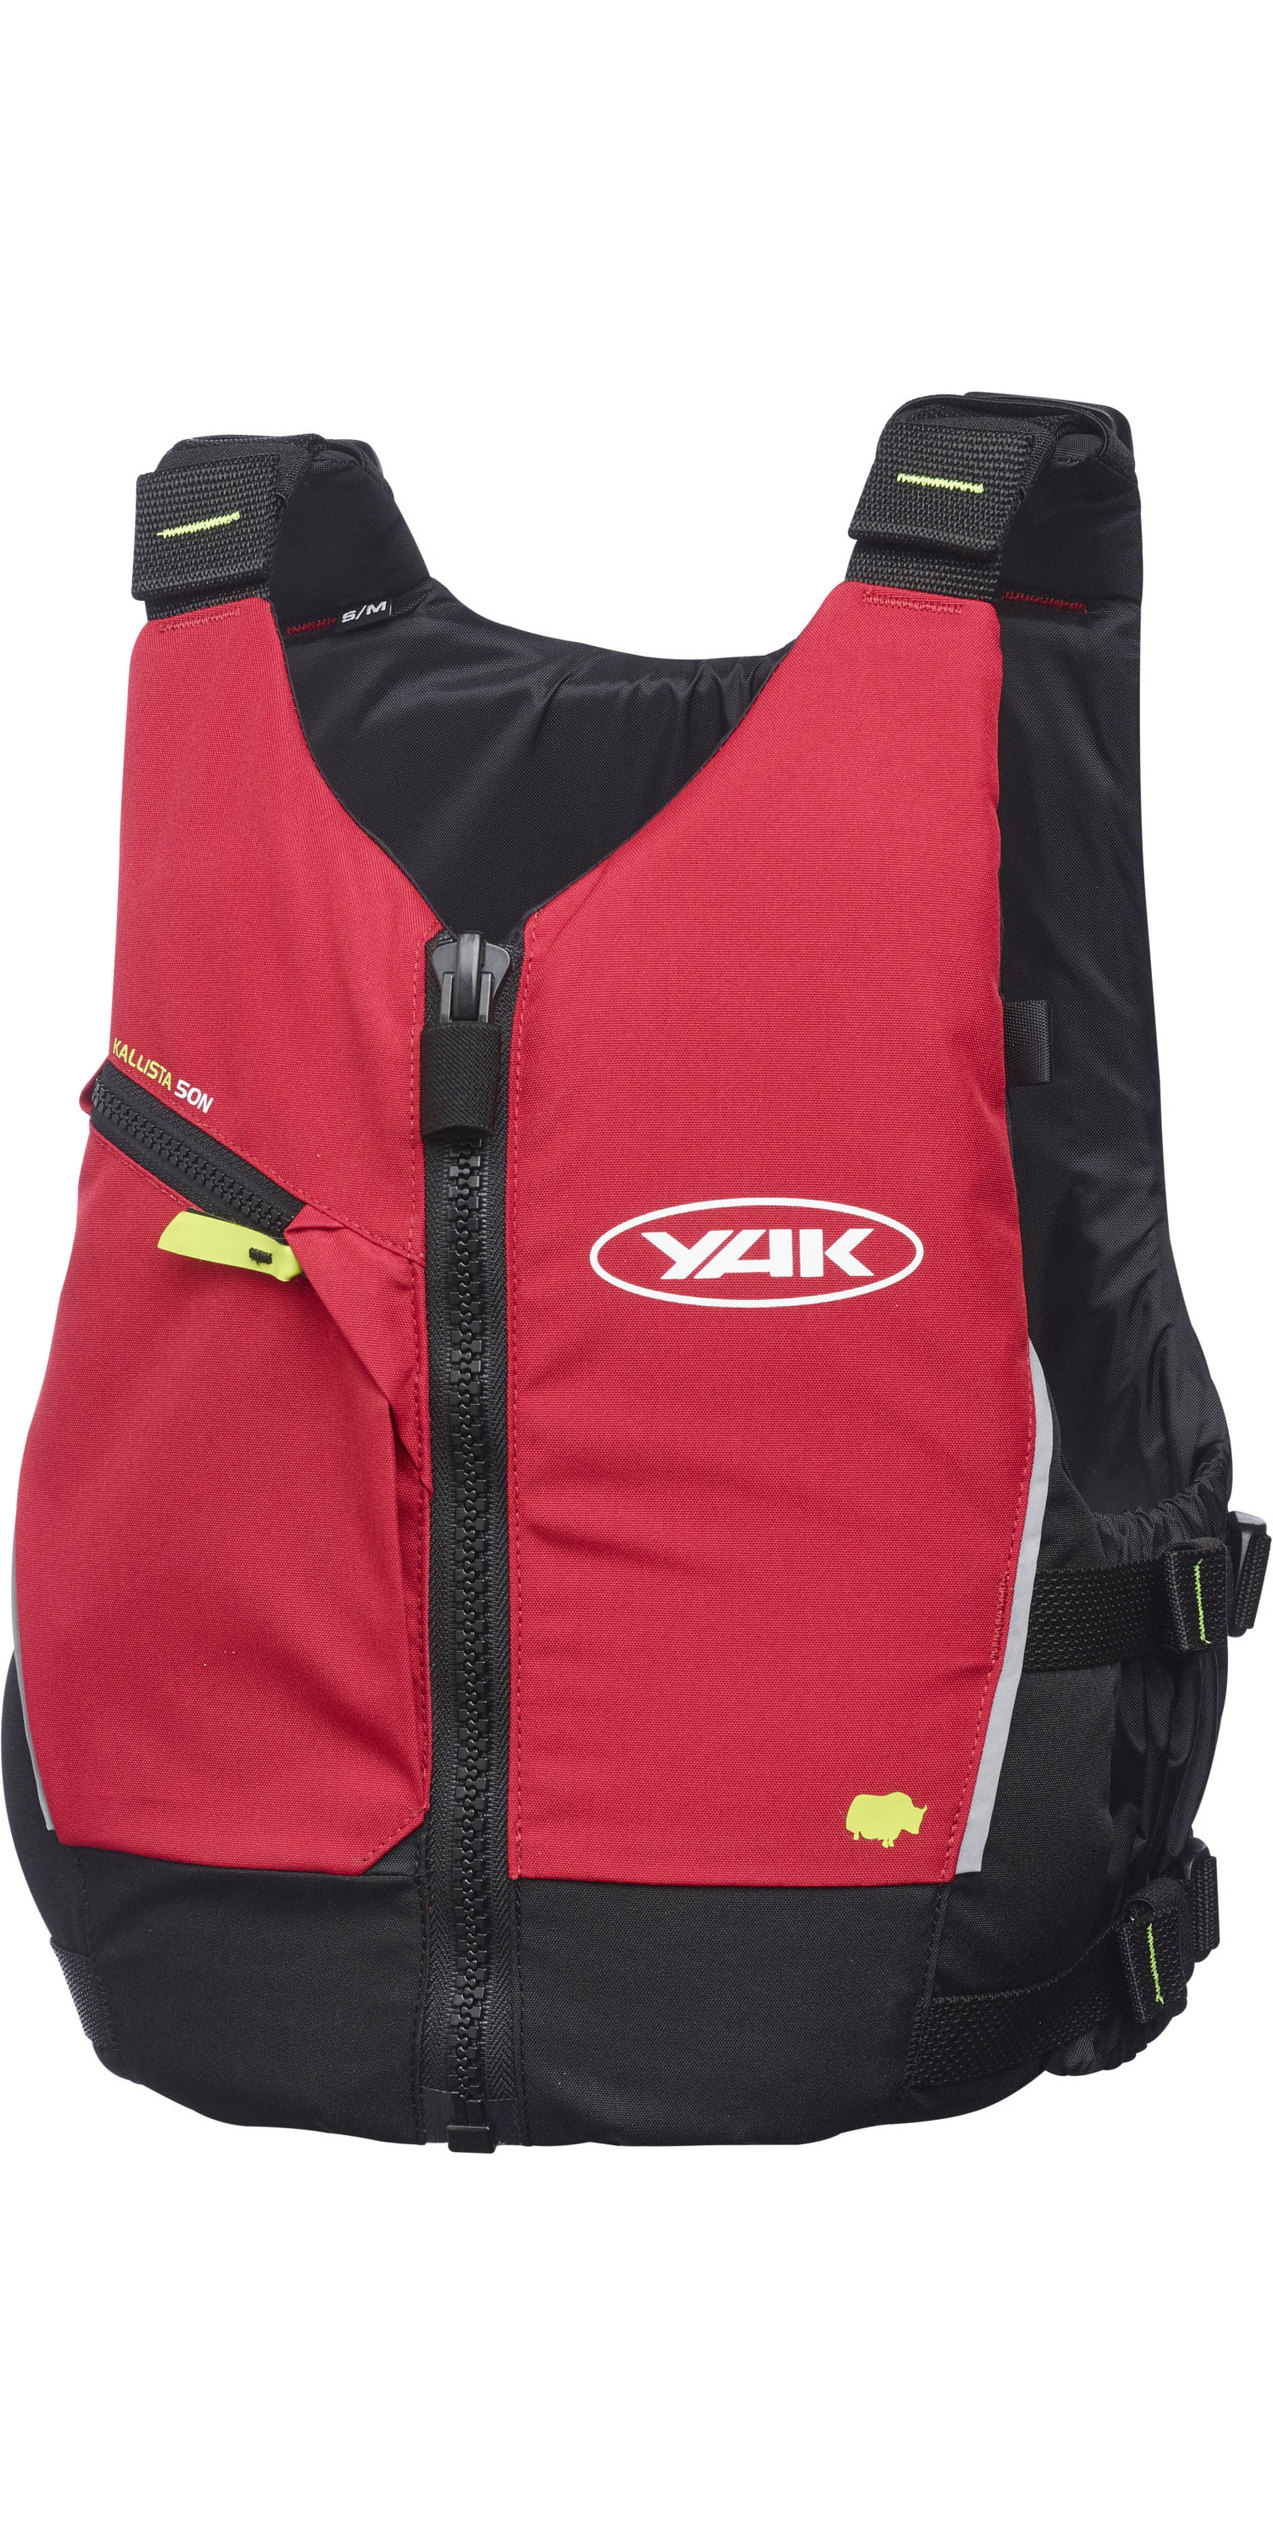 Yak  Kallista 50N Buoyancy Aid Life jacket canoe kayaking watersports